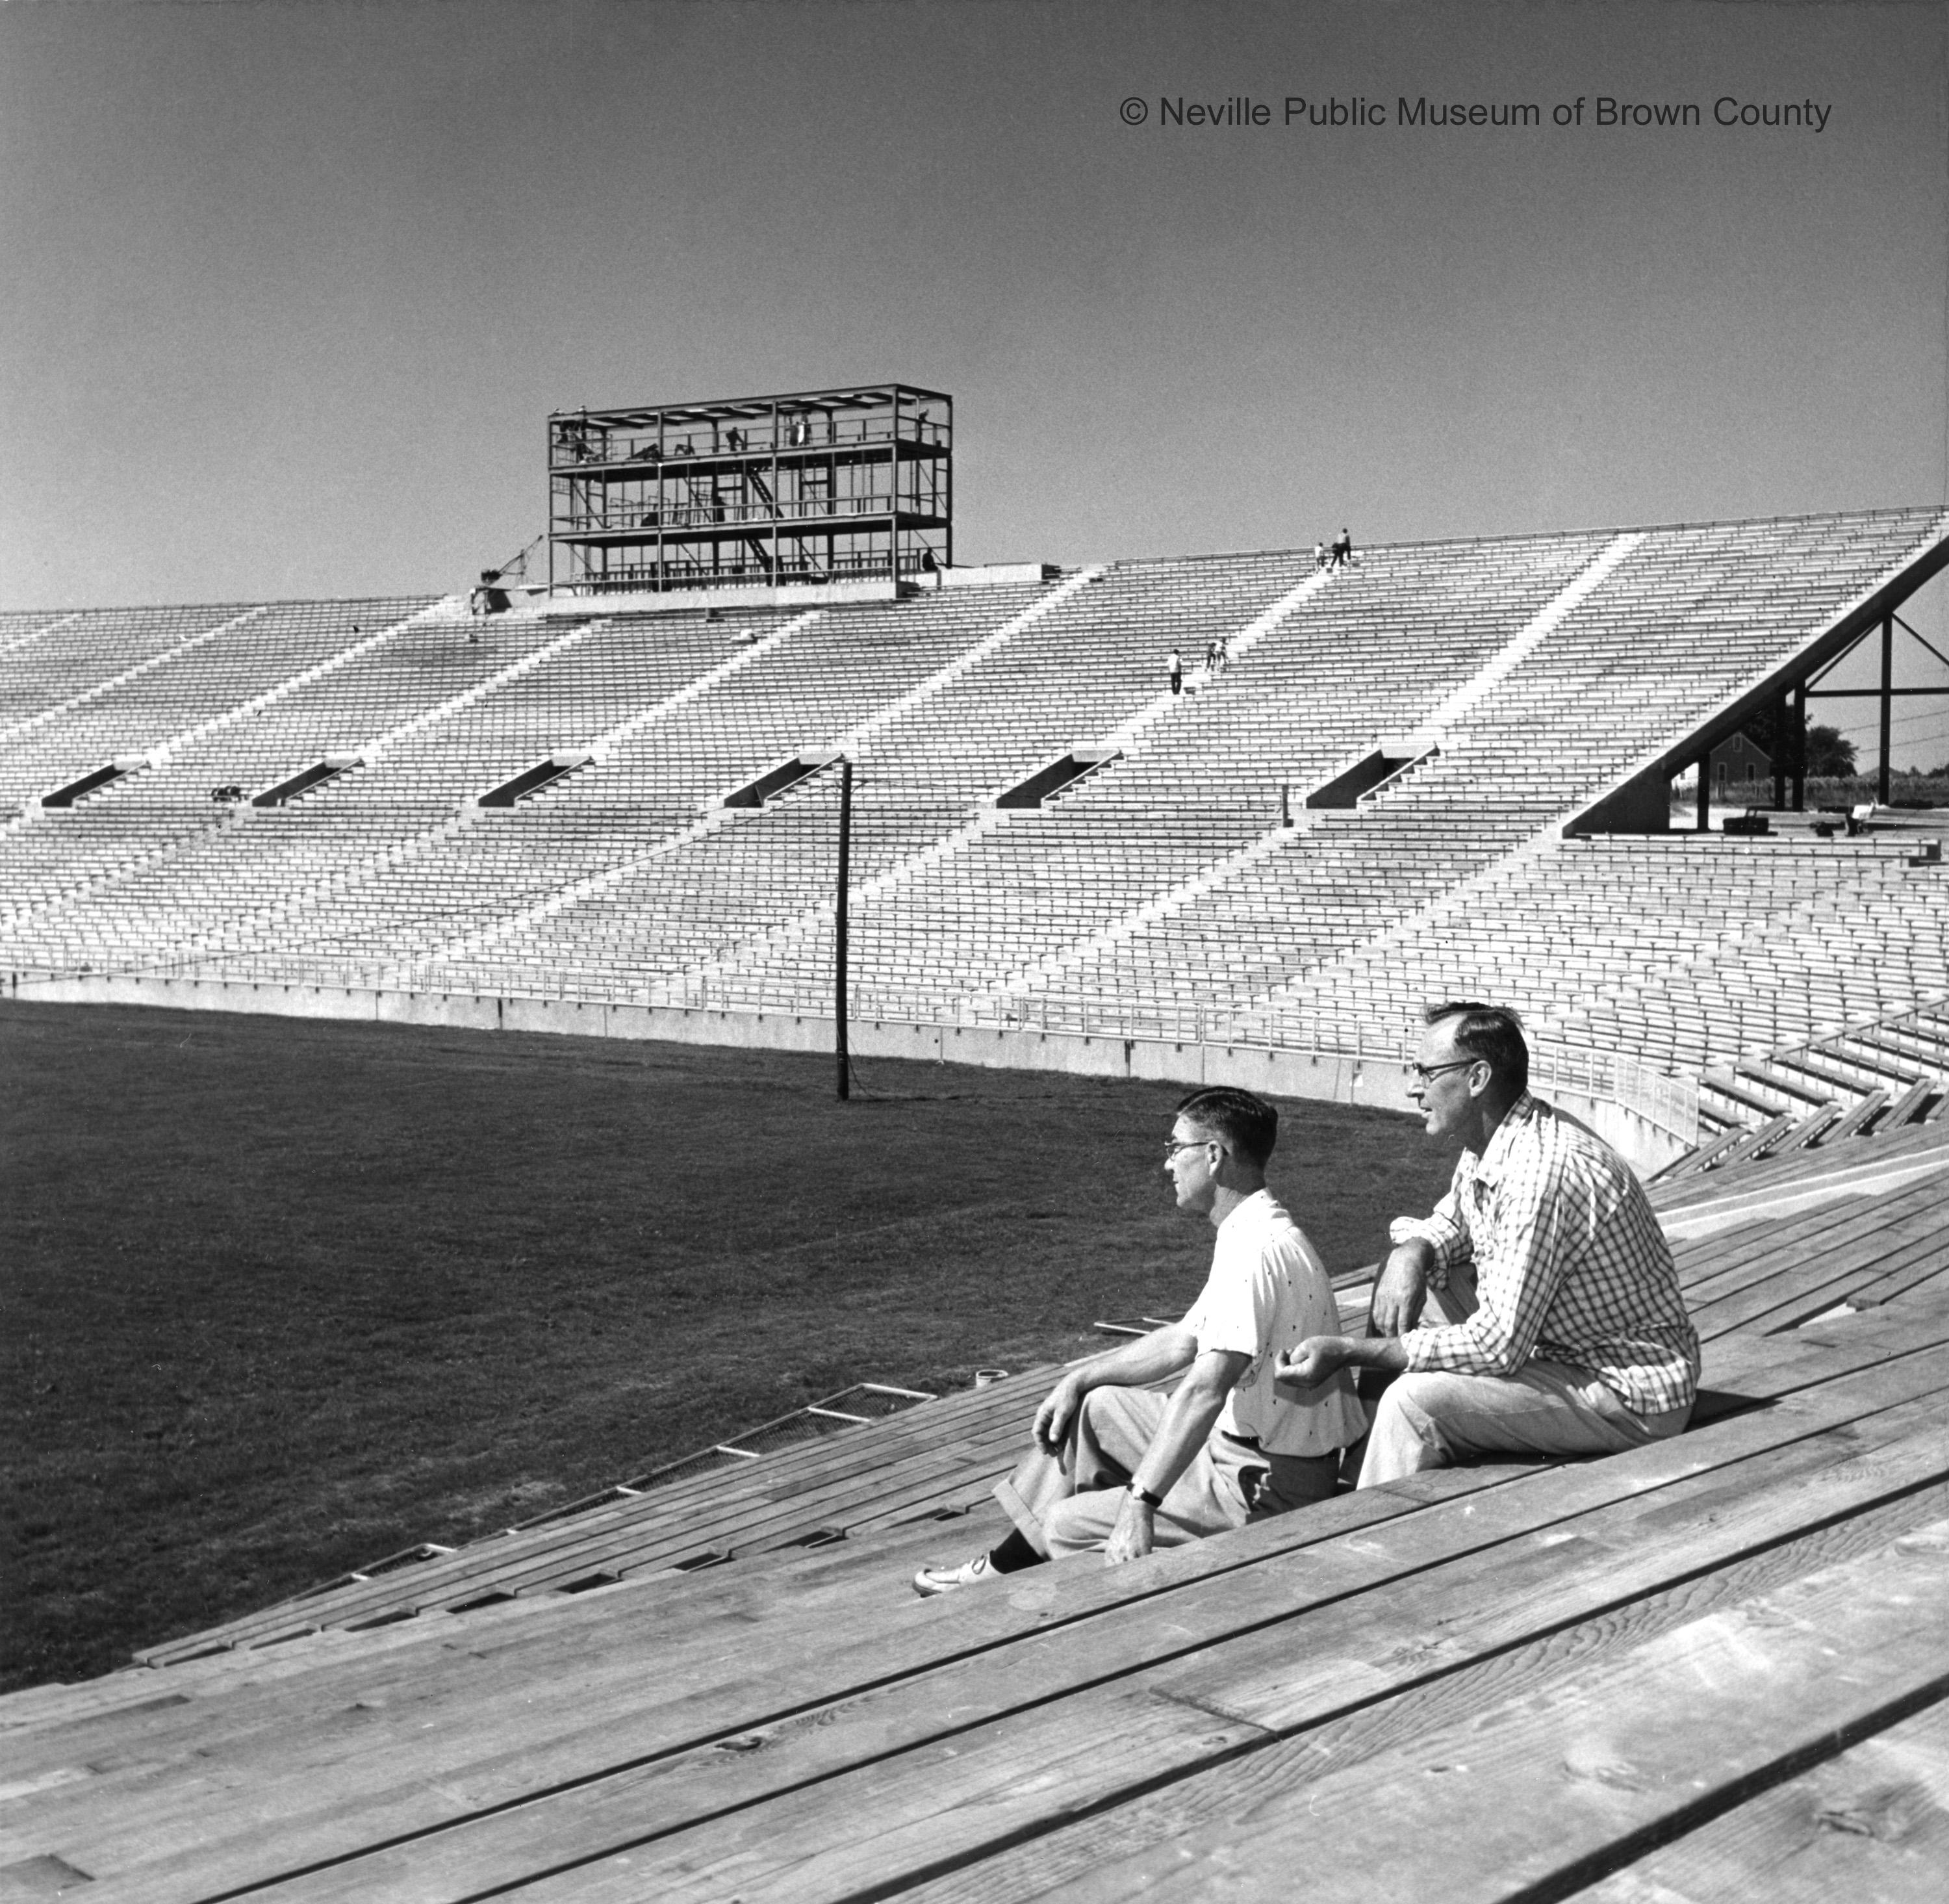 New City Stadium nearing completion following a 1956 referendum approved by taxpayers. The stadium would open September 29, 1957 against the Chicago Bears. (Courtesy: Neville Public Museum of Brown County)